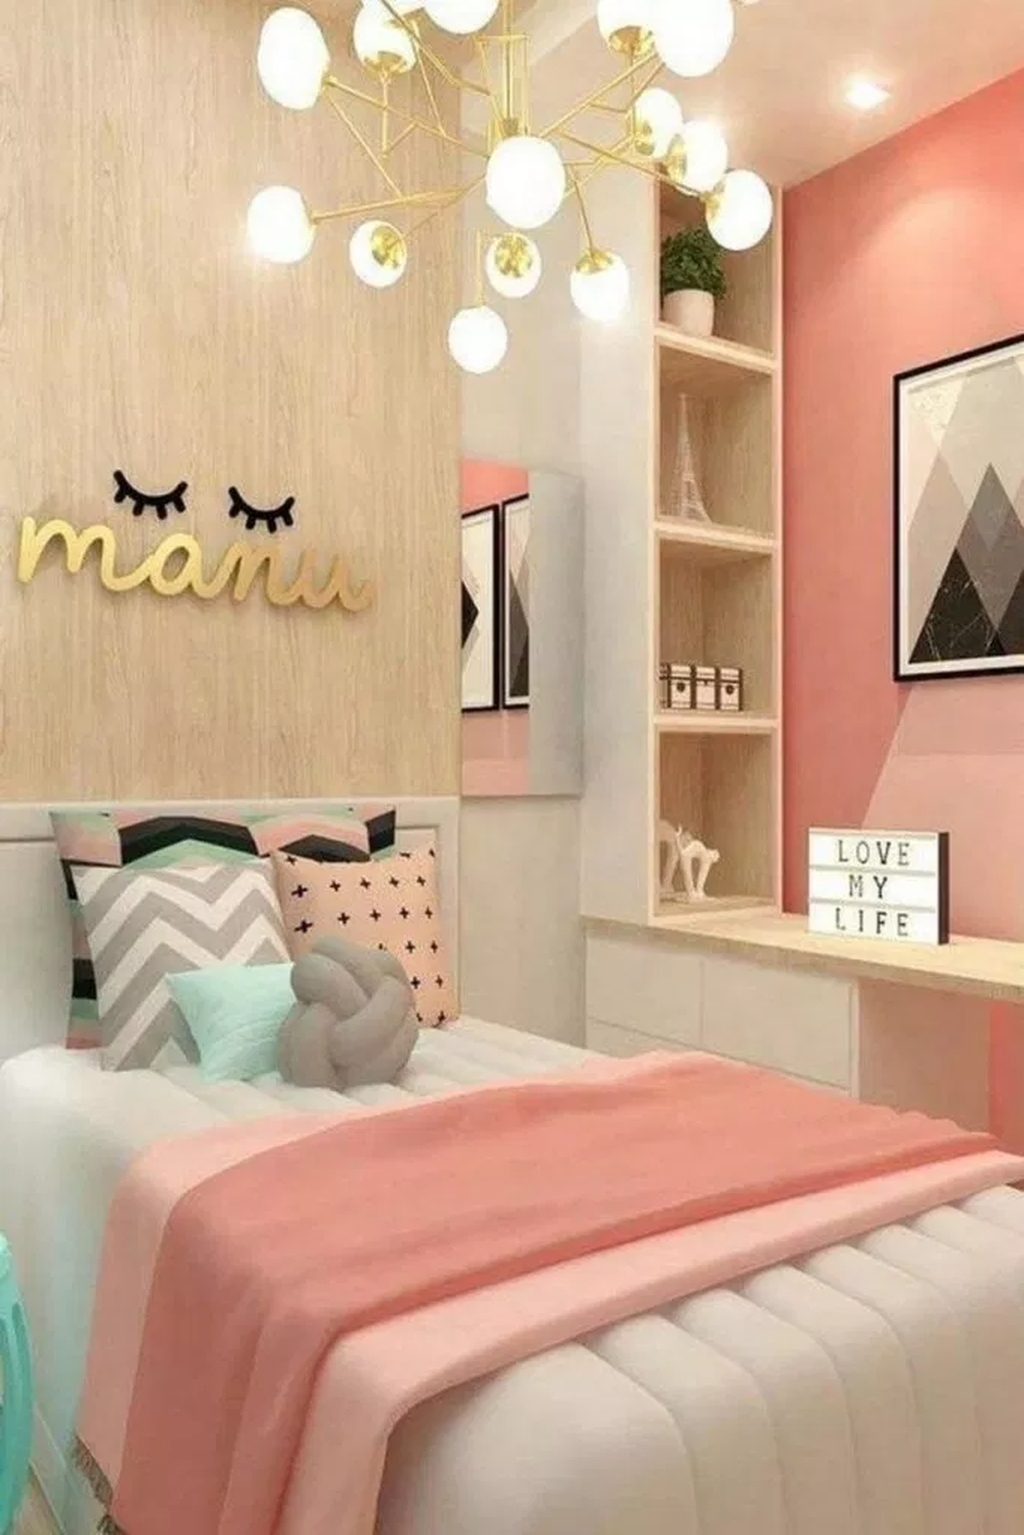 20+ Beautiful Girls Bedroom Ideas For Small Rooms To Try ... on Decorations For Girls Room  id=16610